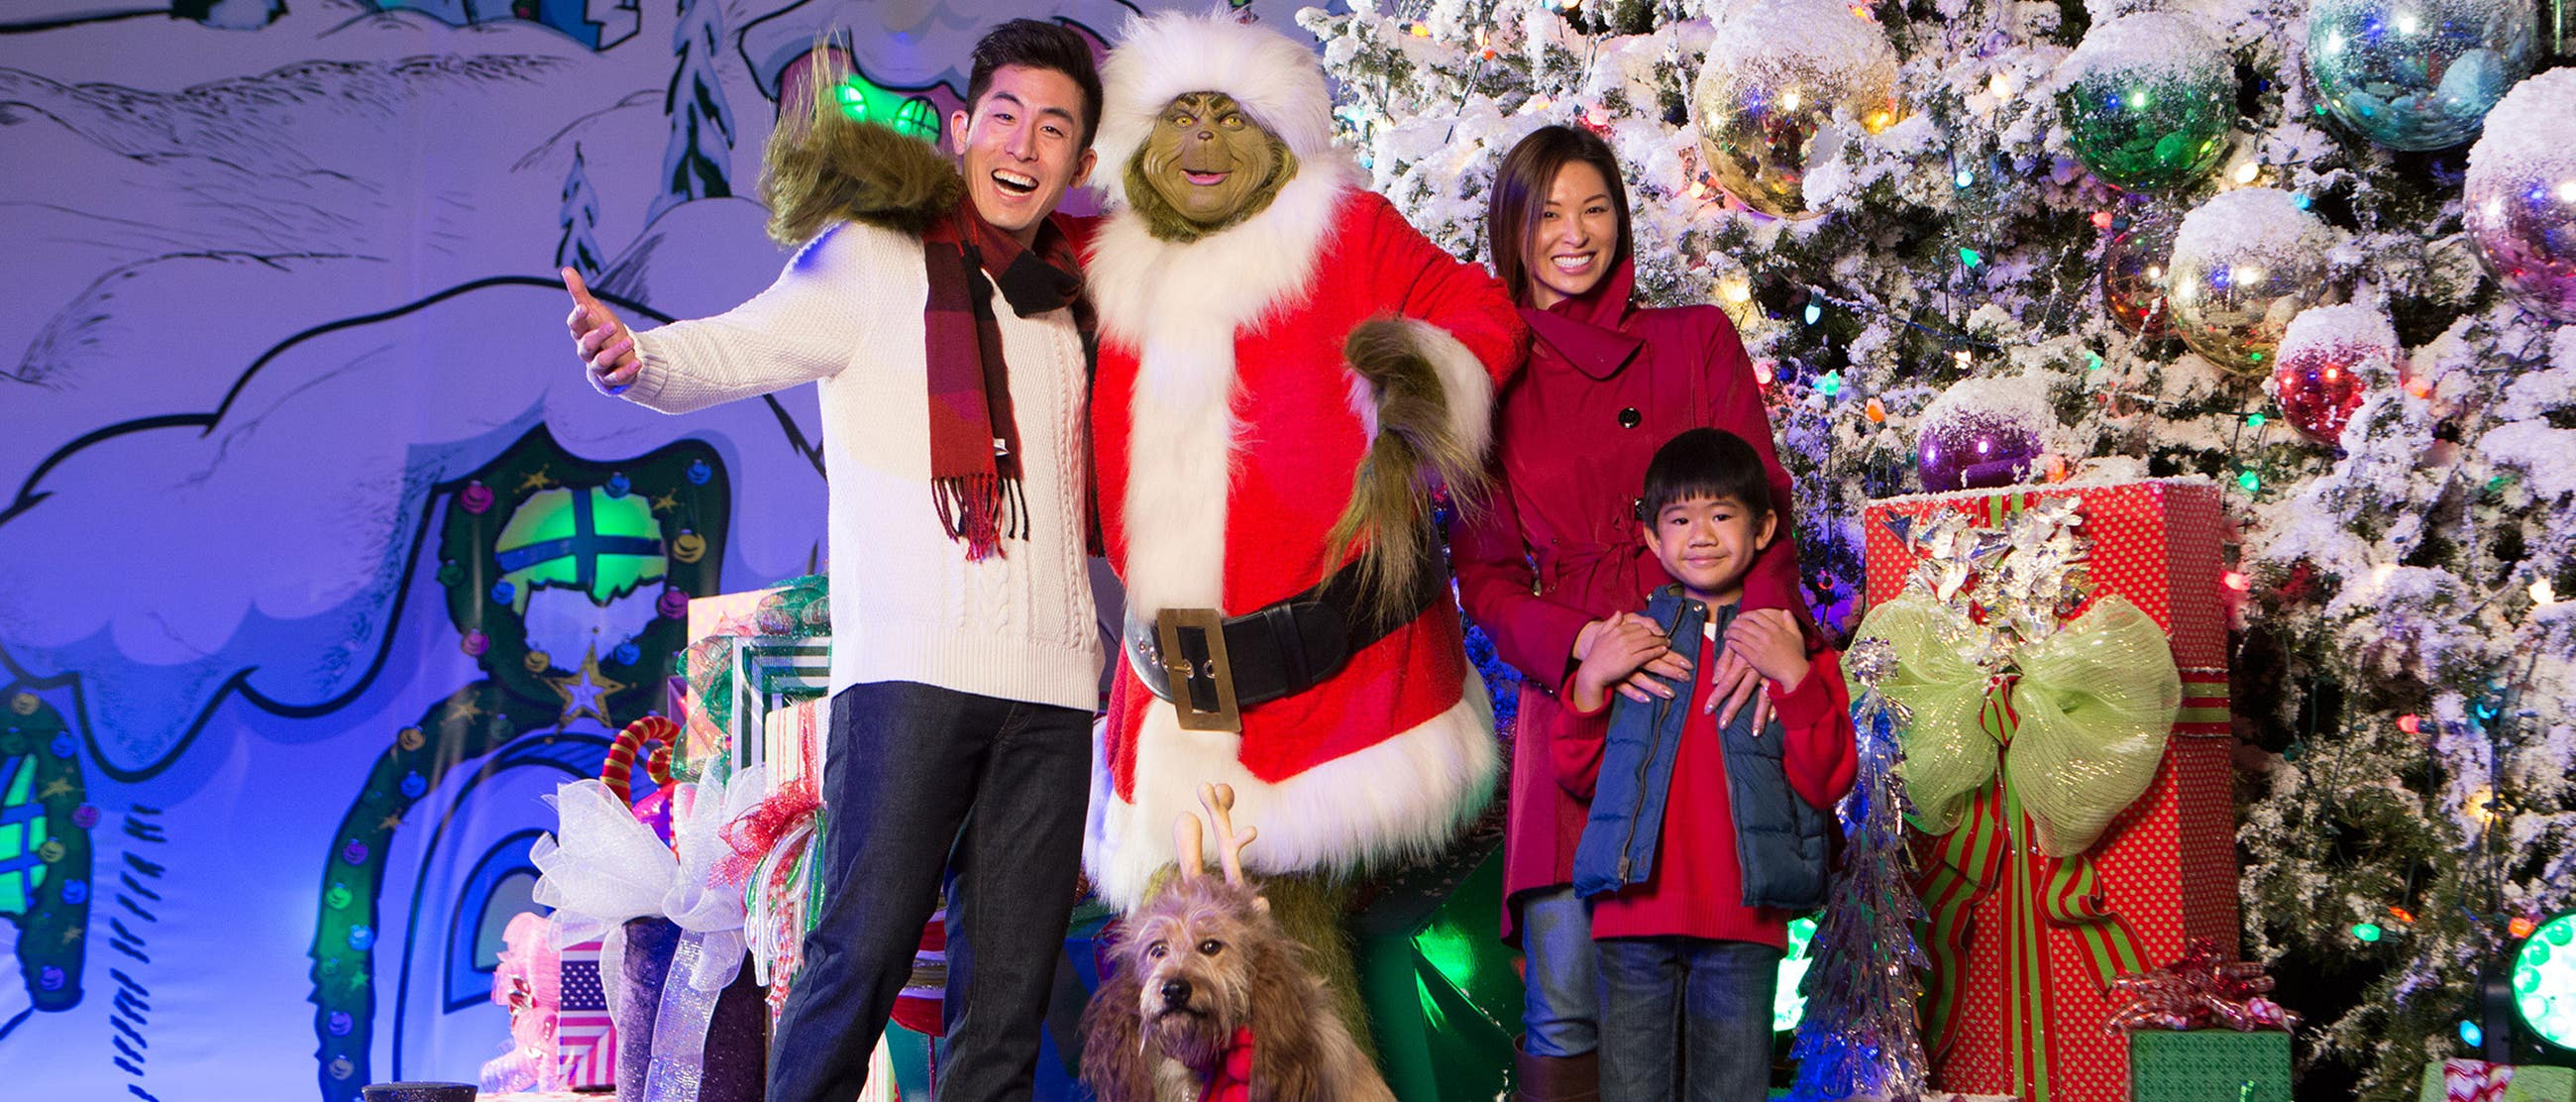 Family photo with The Grinch at Grinchmas in Universal Studios Hollywood